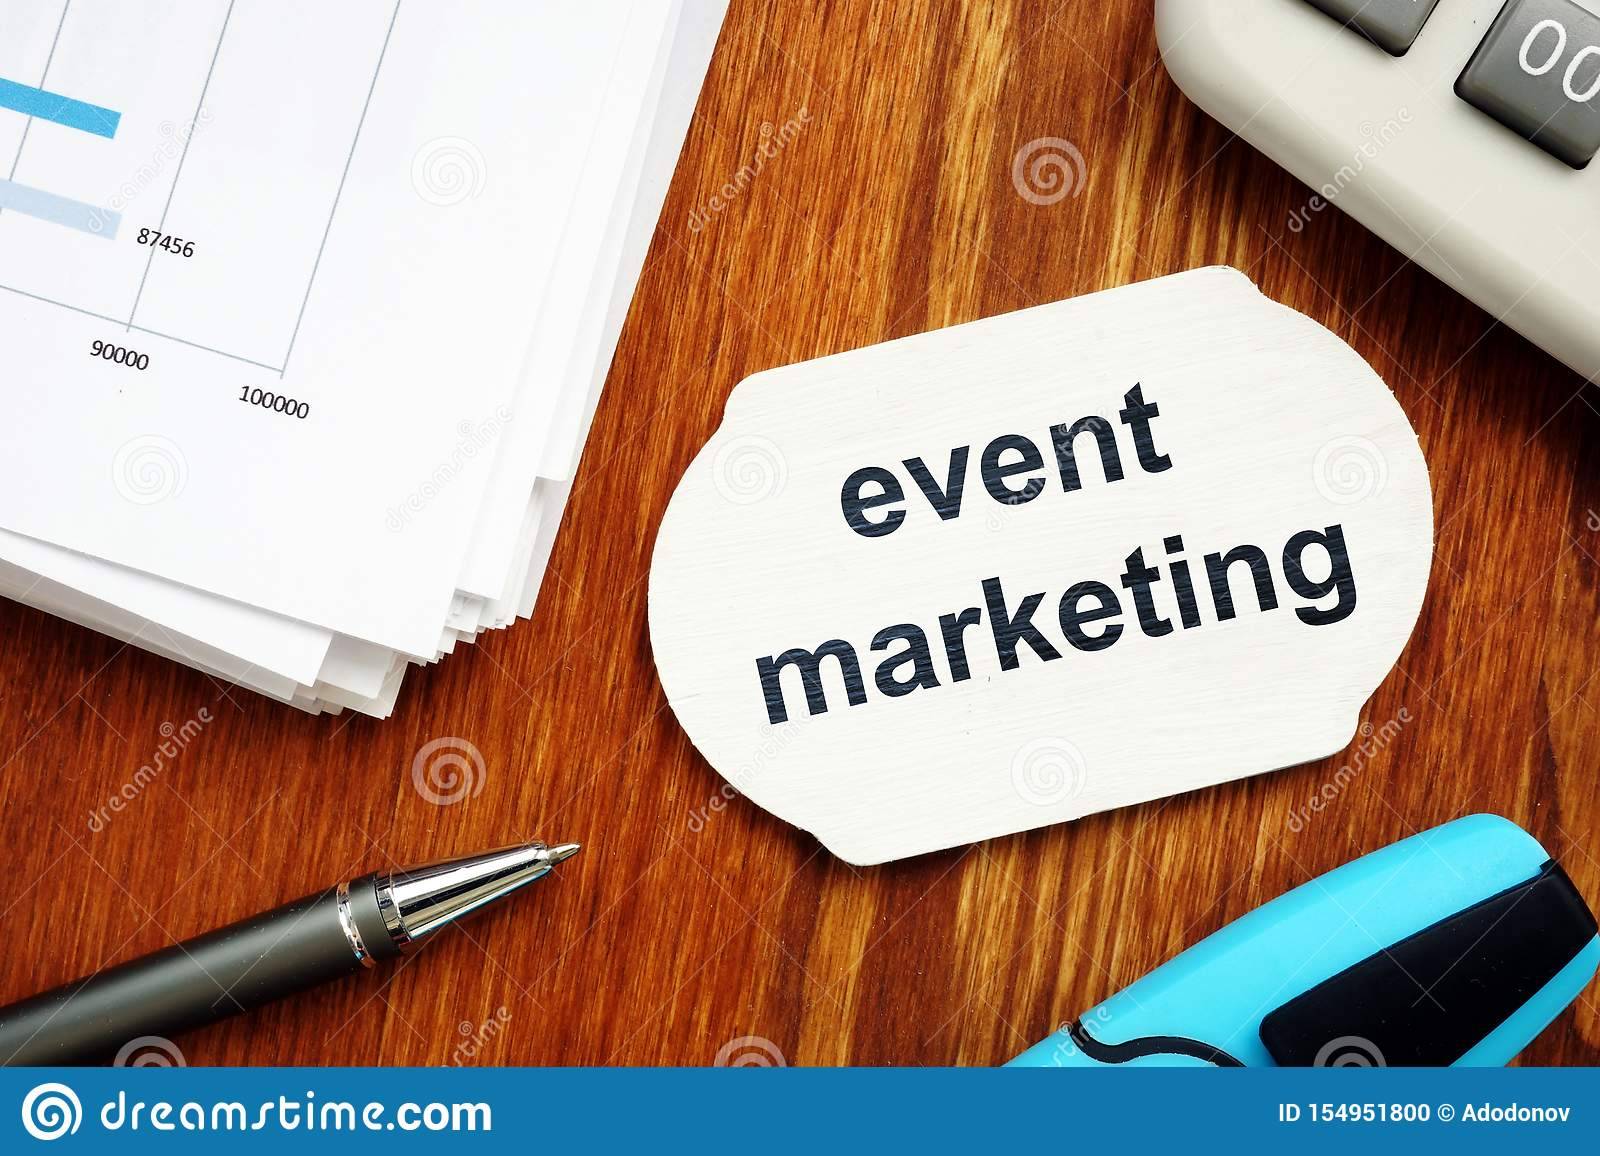 Text sign showing event marketing. The text is written on a small wooden board. Graphs on the paper sheet, pen, keyboard, wooden